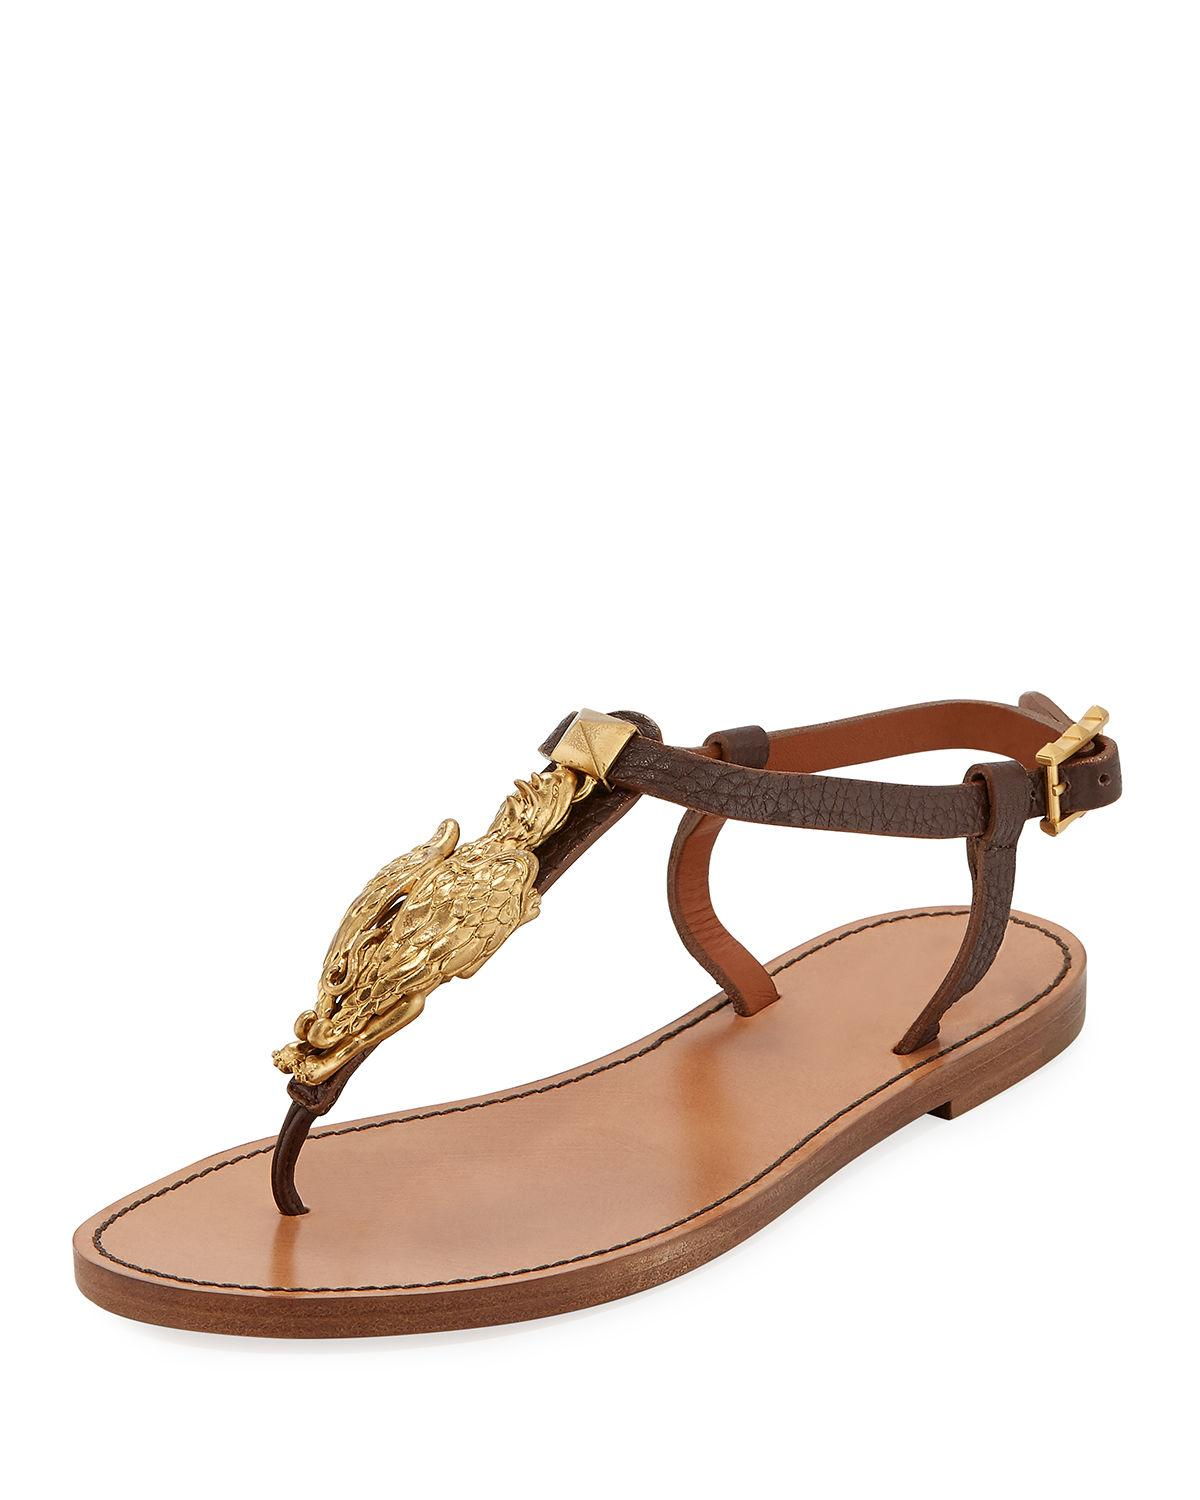 In Ornament Thong Leather Valentino Gryphon Flat Sandals With Brown wv8mnN0O